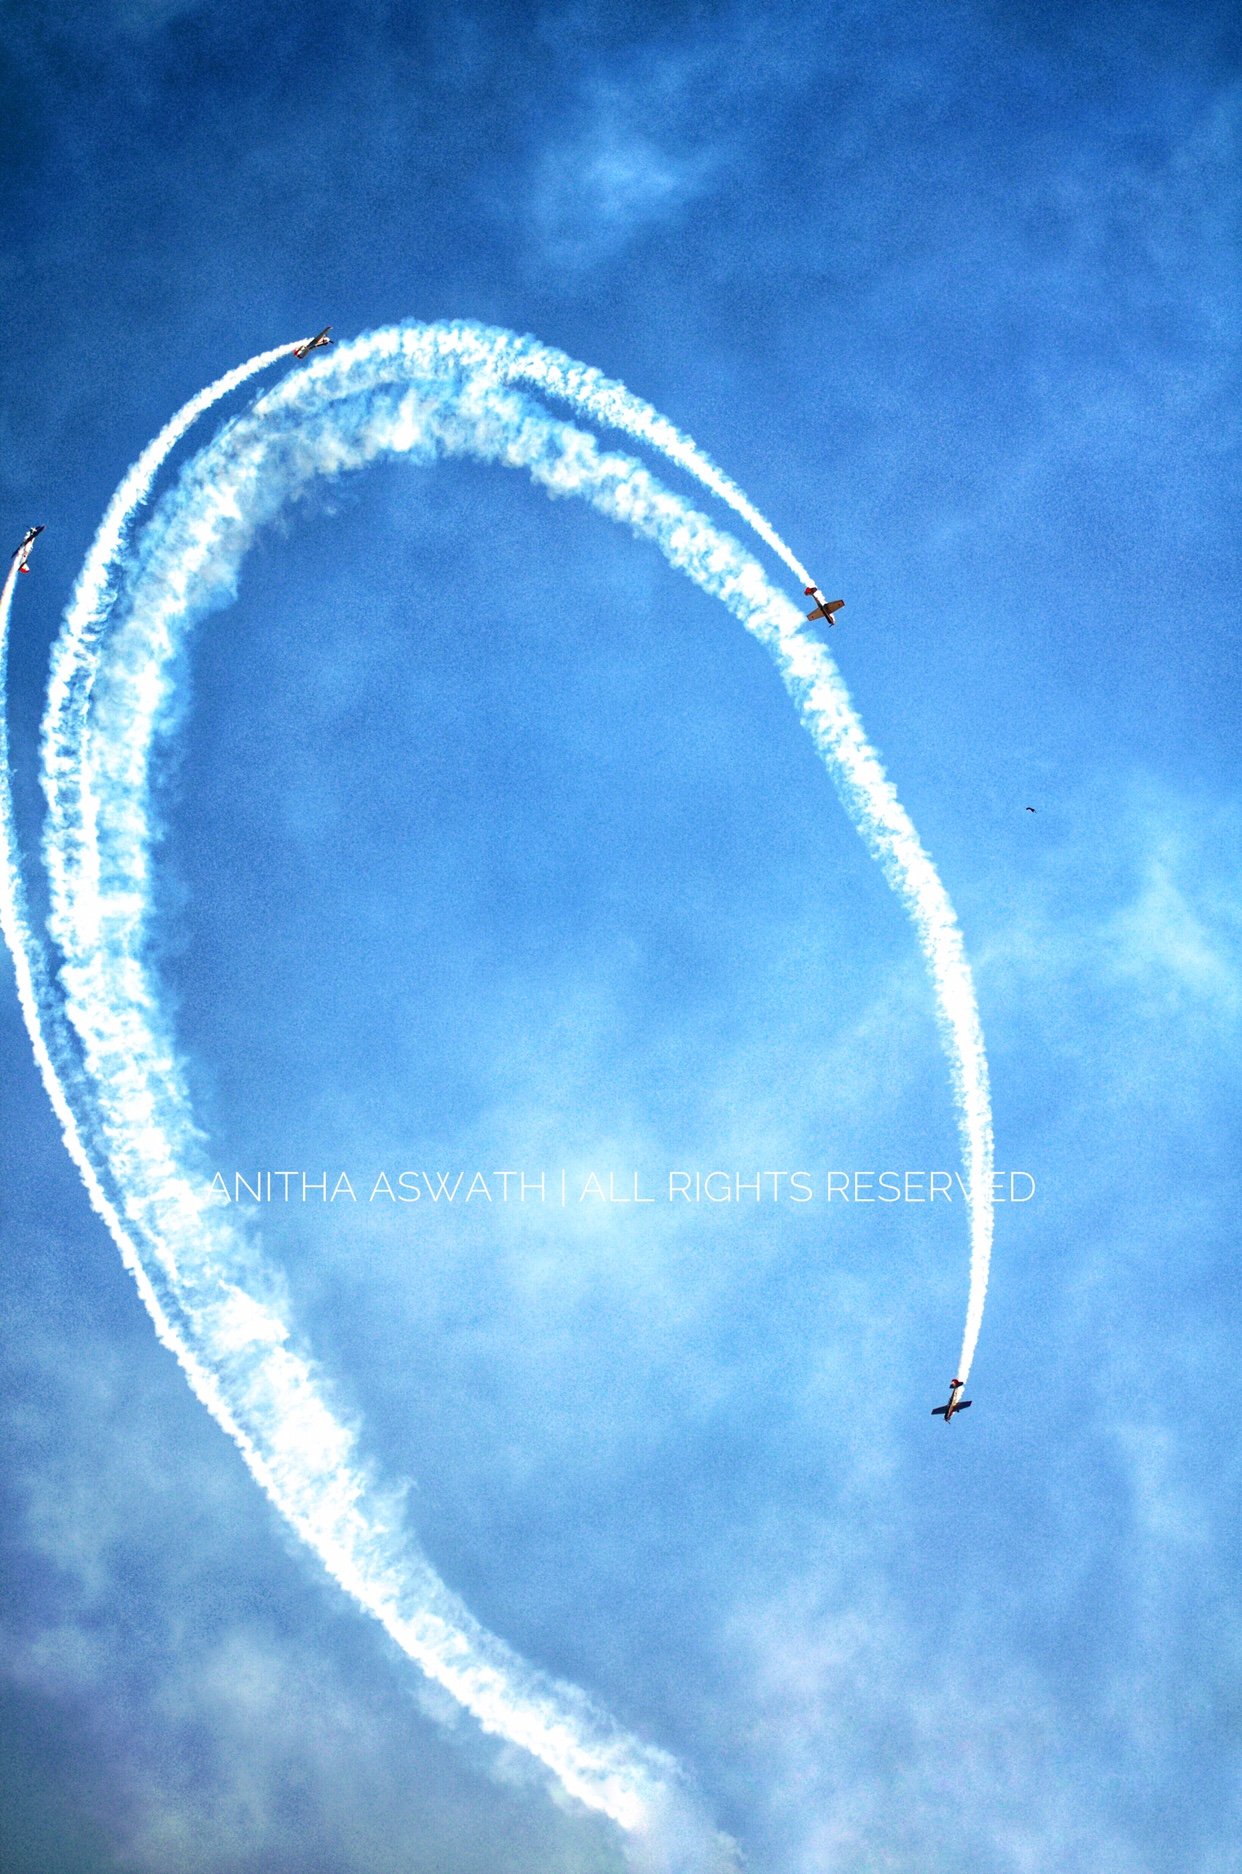 The Yakovlevs Aerobatic Team